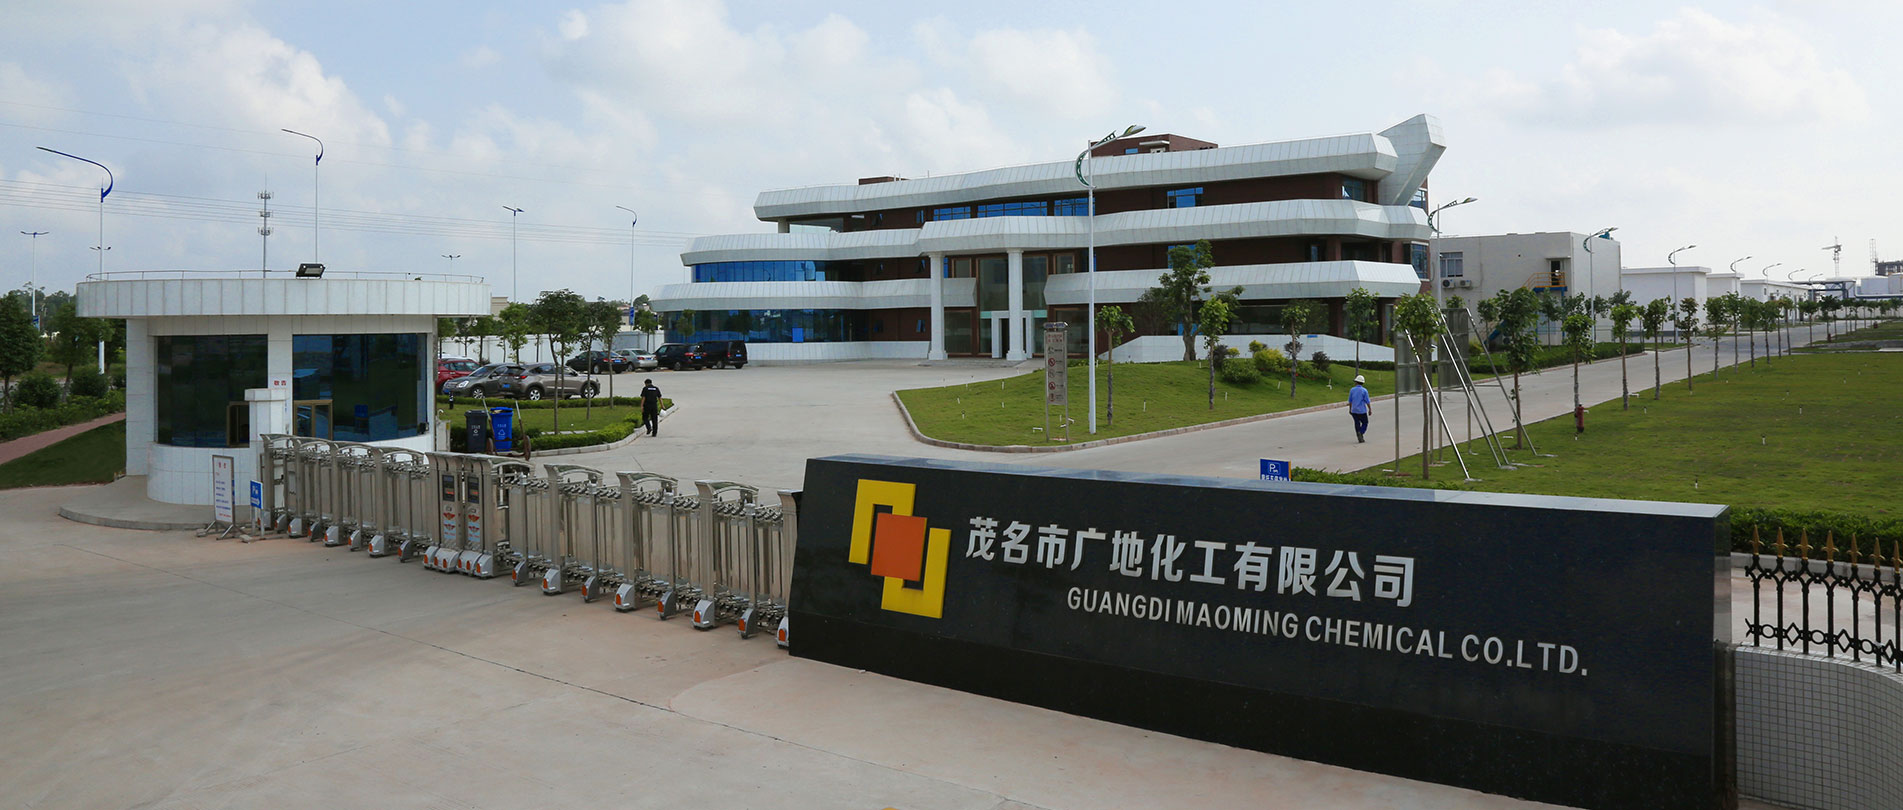 guangdi maoming chemical